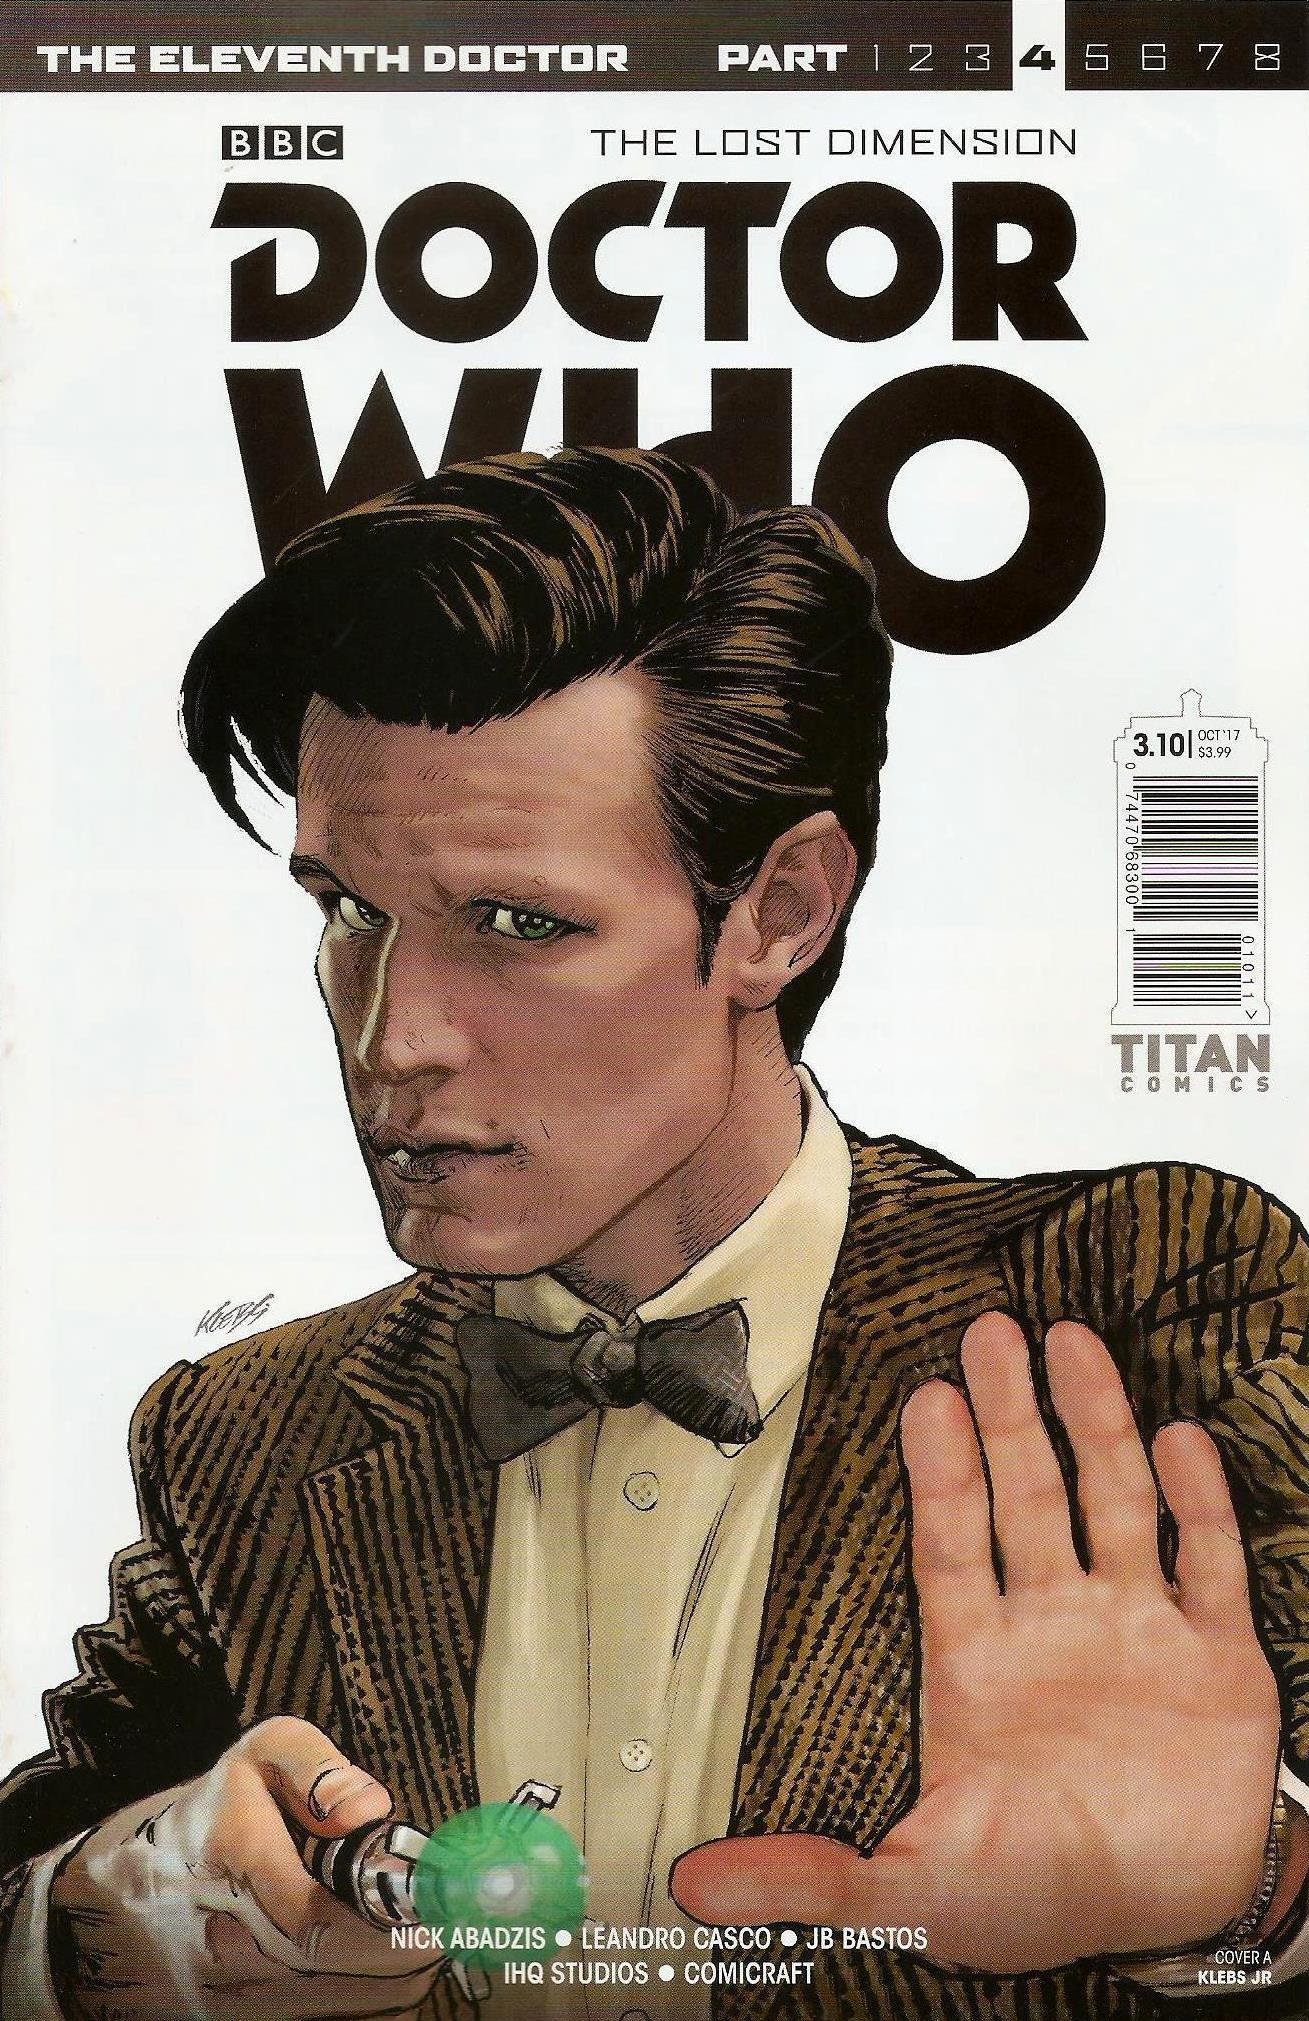 Eleventh doctor year 3 issue 10a